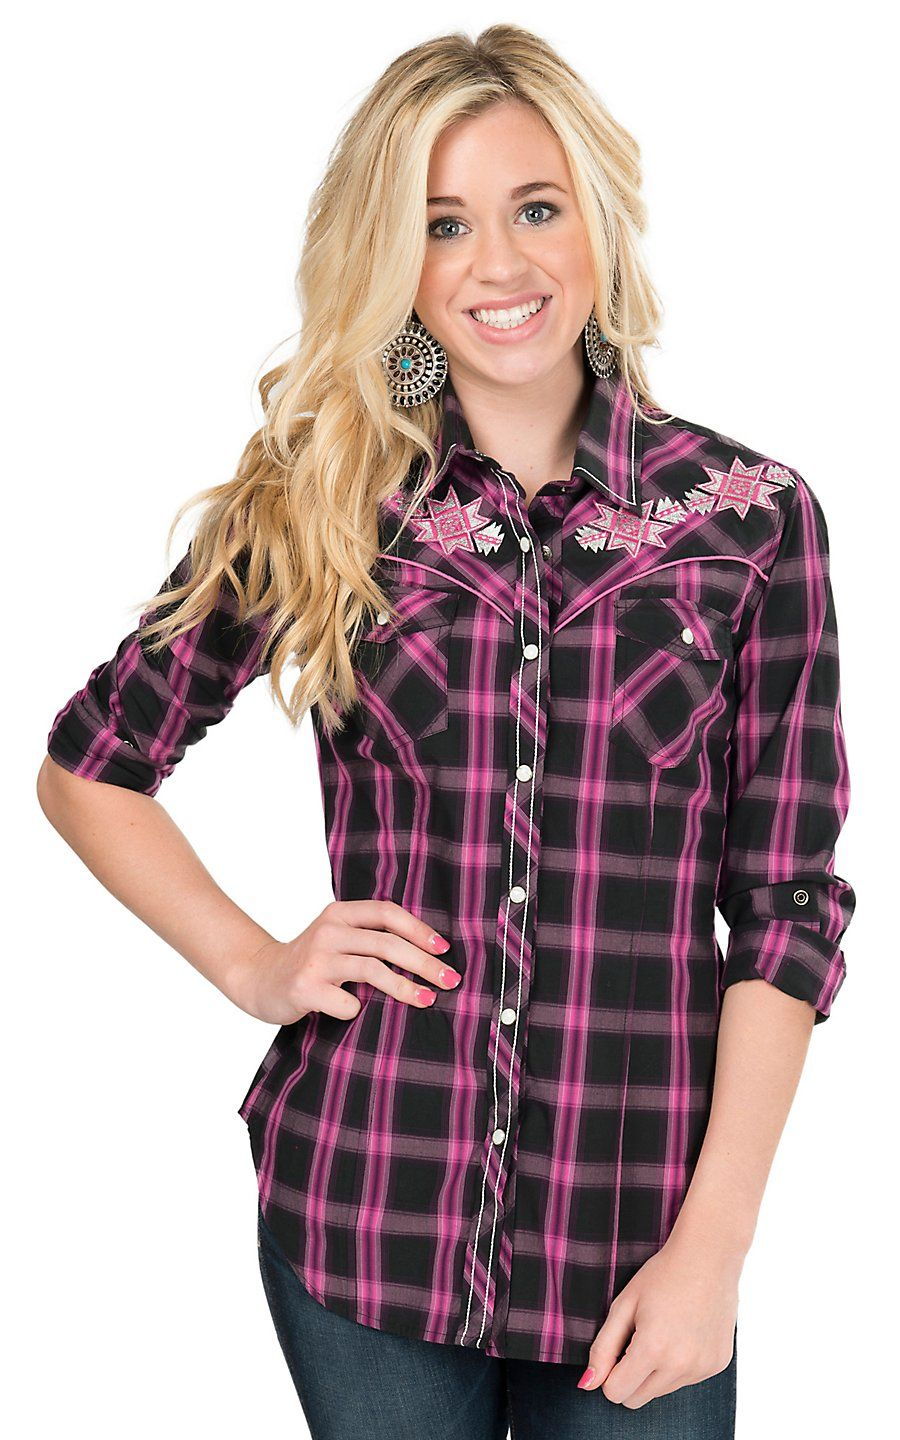 cd23f7895 Rock & Roll Cowgirl Women's Pink & Black Plaid with Aztec Embroidery Long  Sleeve Western Shirt | Cavender's